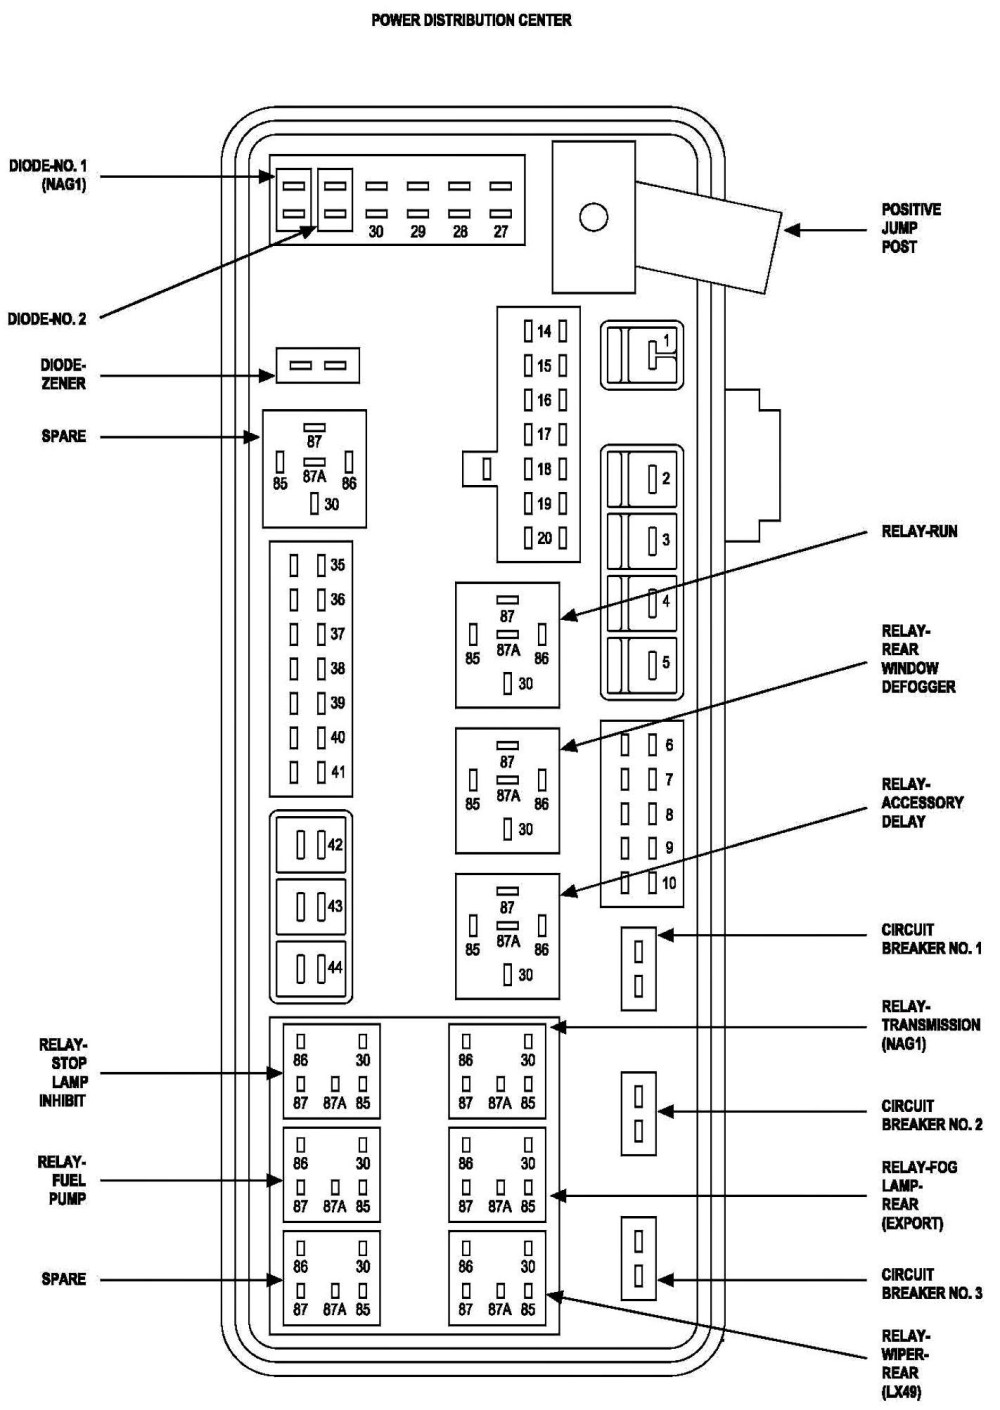 medium resolution of 2009 chrysler town and country fuse box wiring diagram sheet 2003 chrysler town and country fuse box location chrysler minivan fuse box